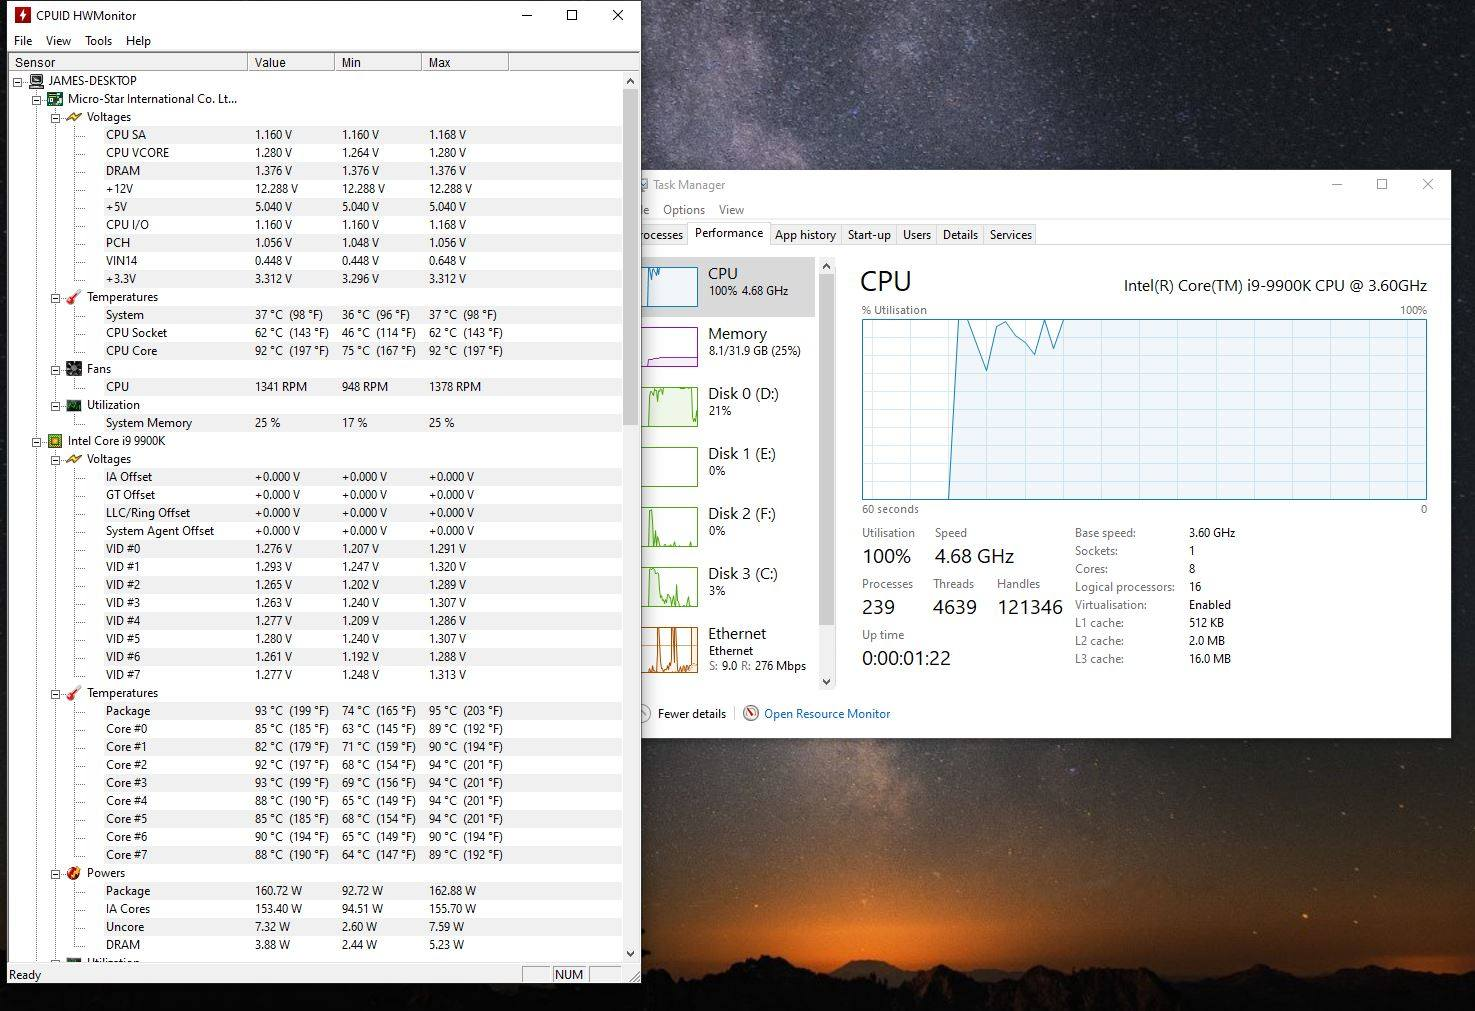 High i9-9900k temps - CPUs, Motherboards, and Memory - Linus